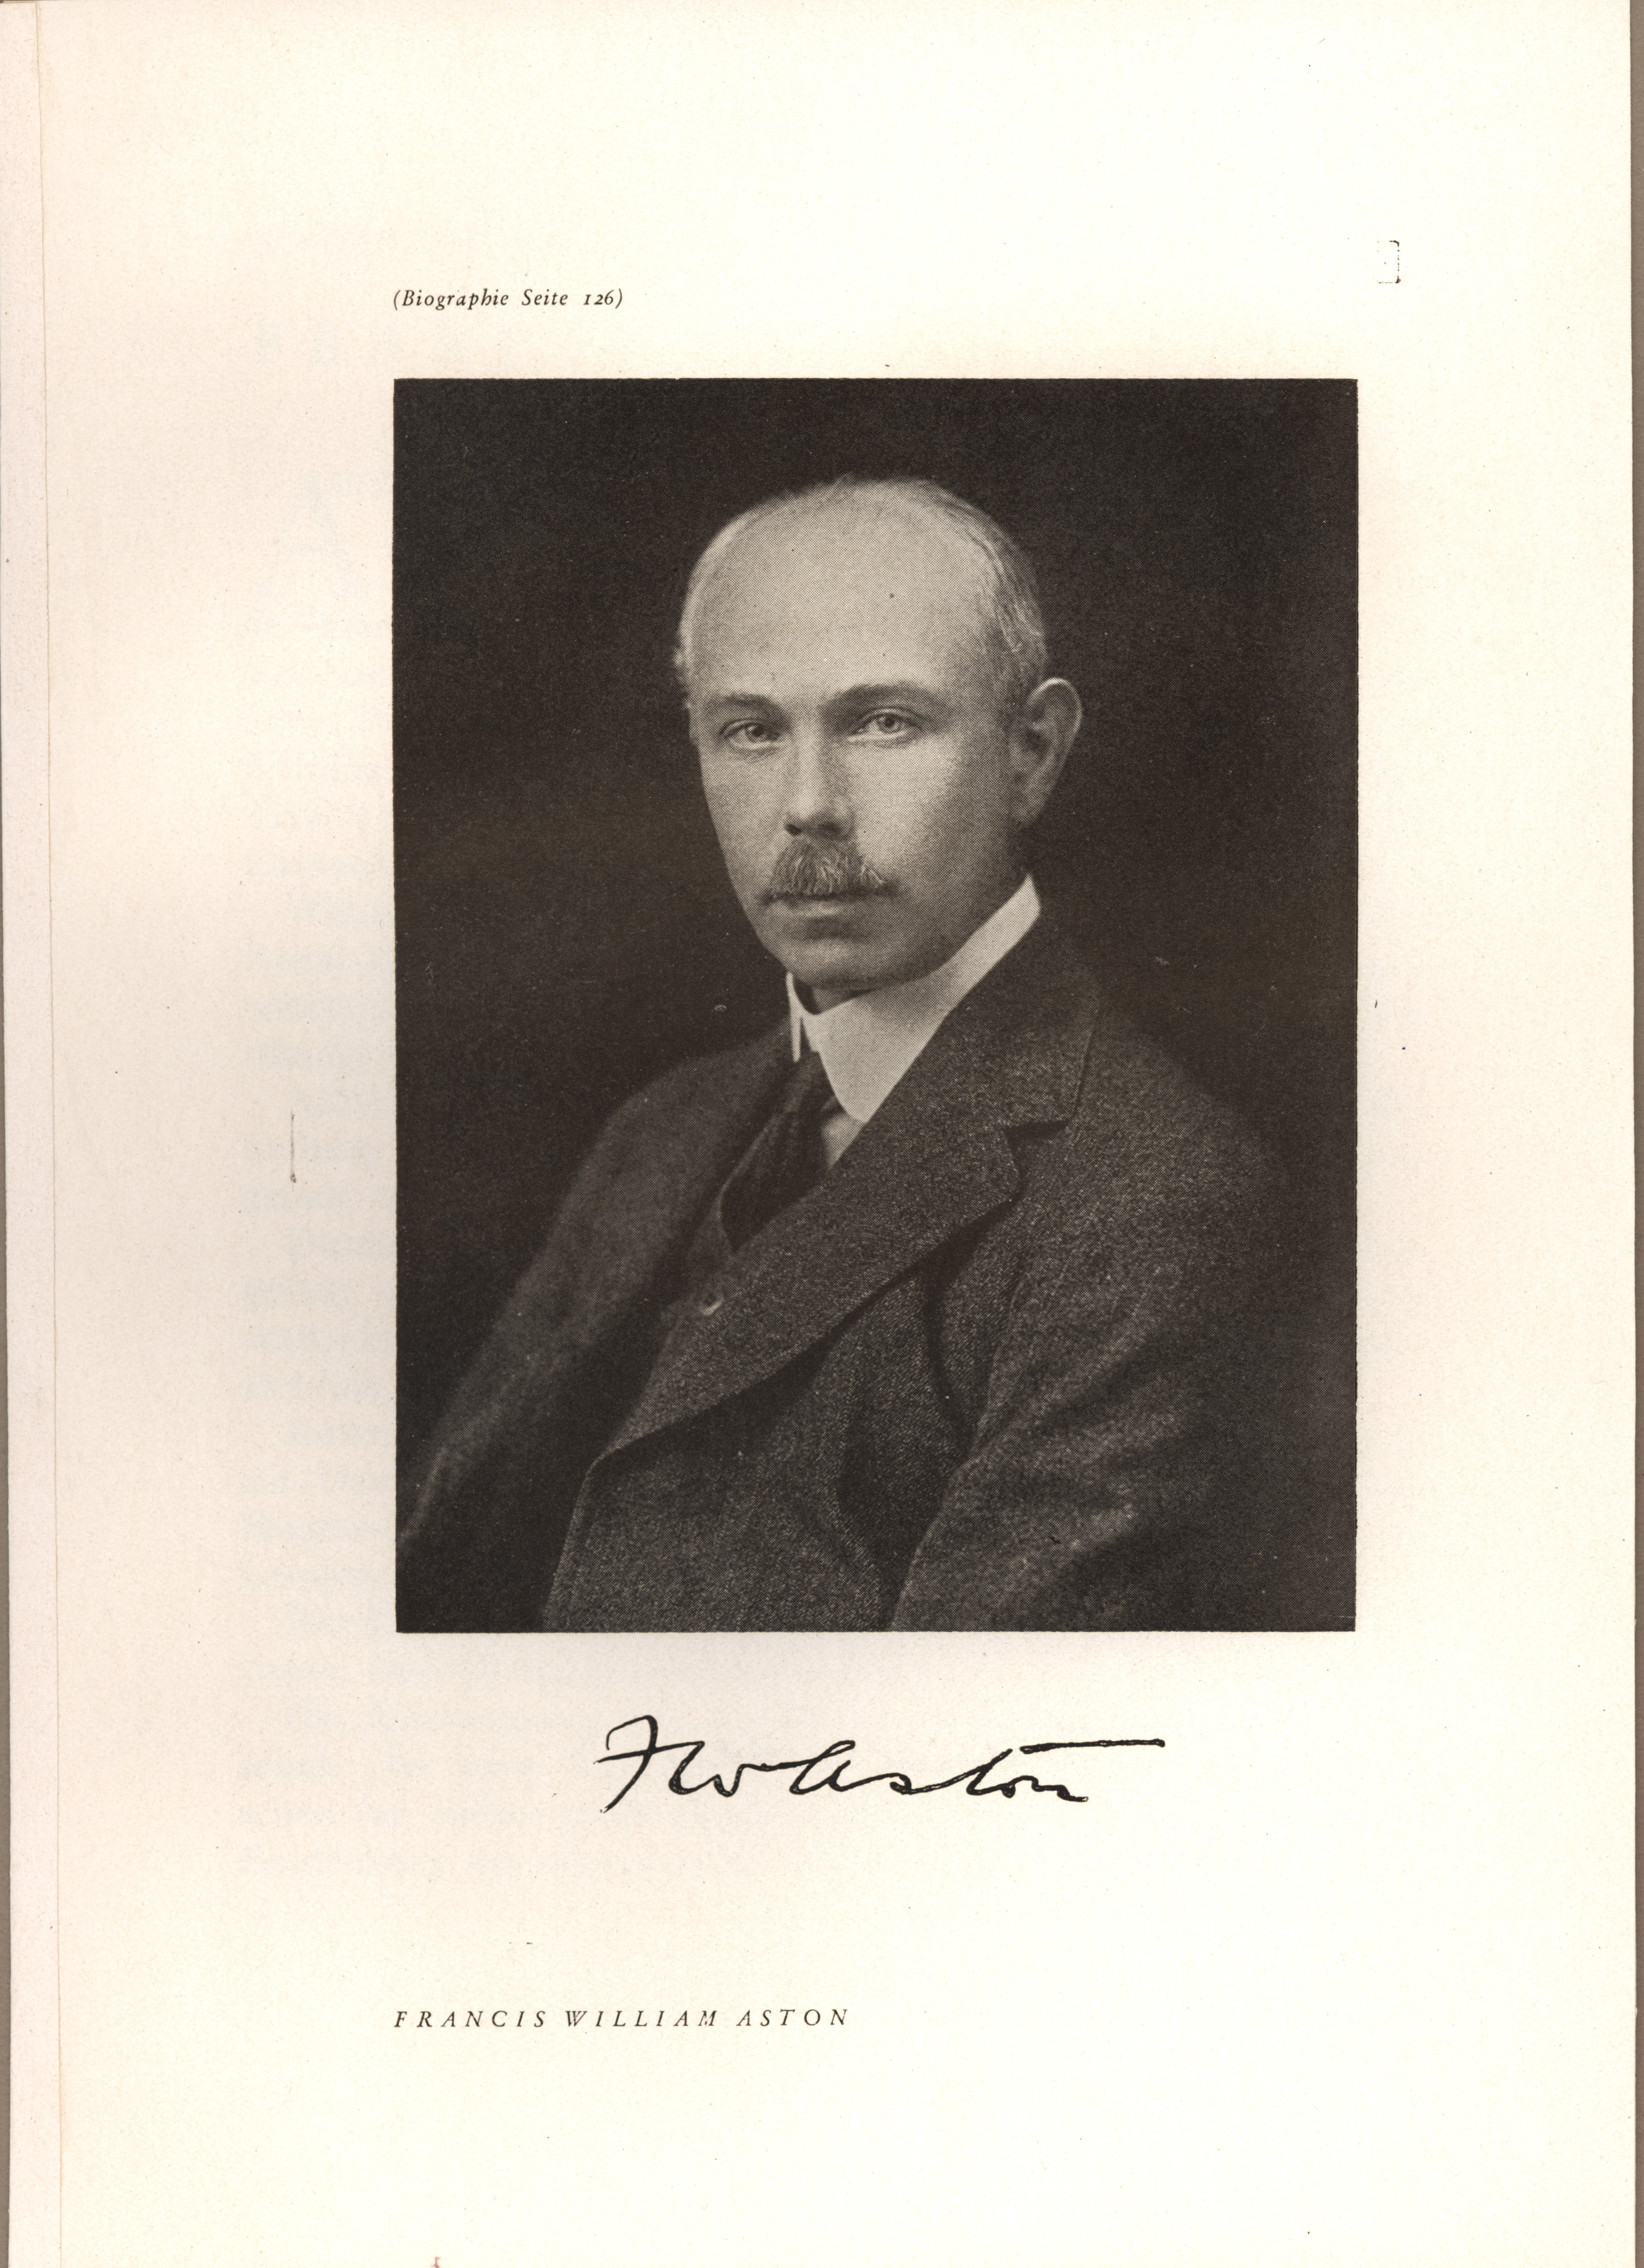 Soubor portrait of francis william aston 1877 1945 chemist and